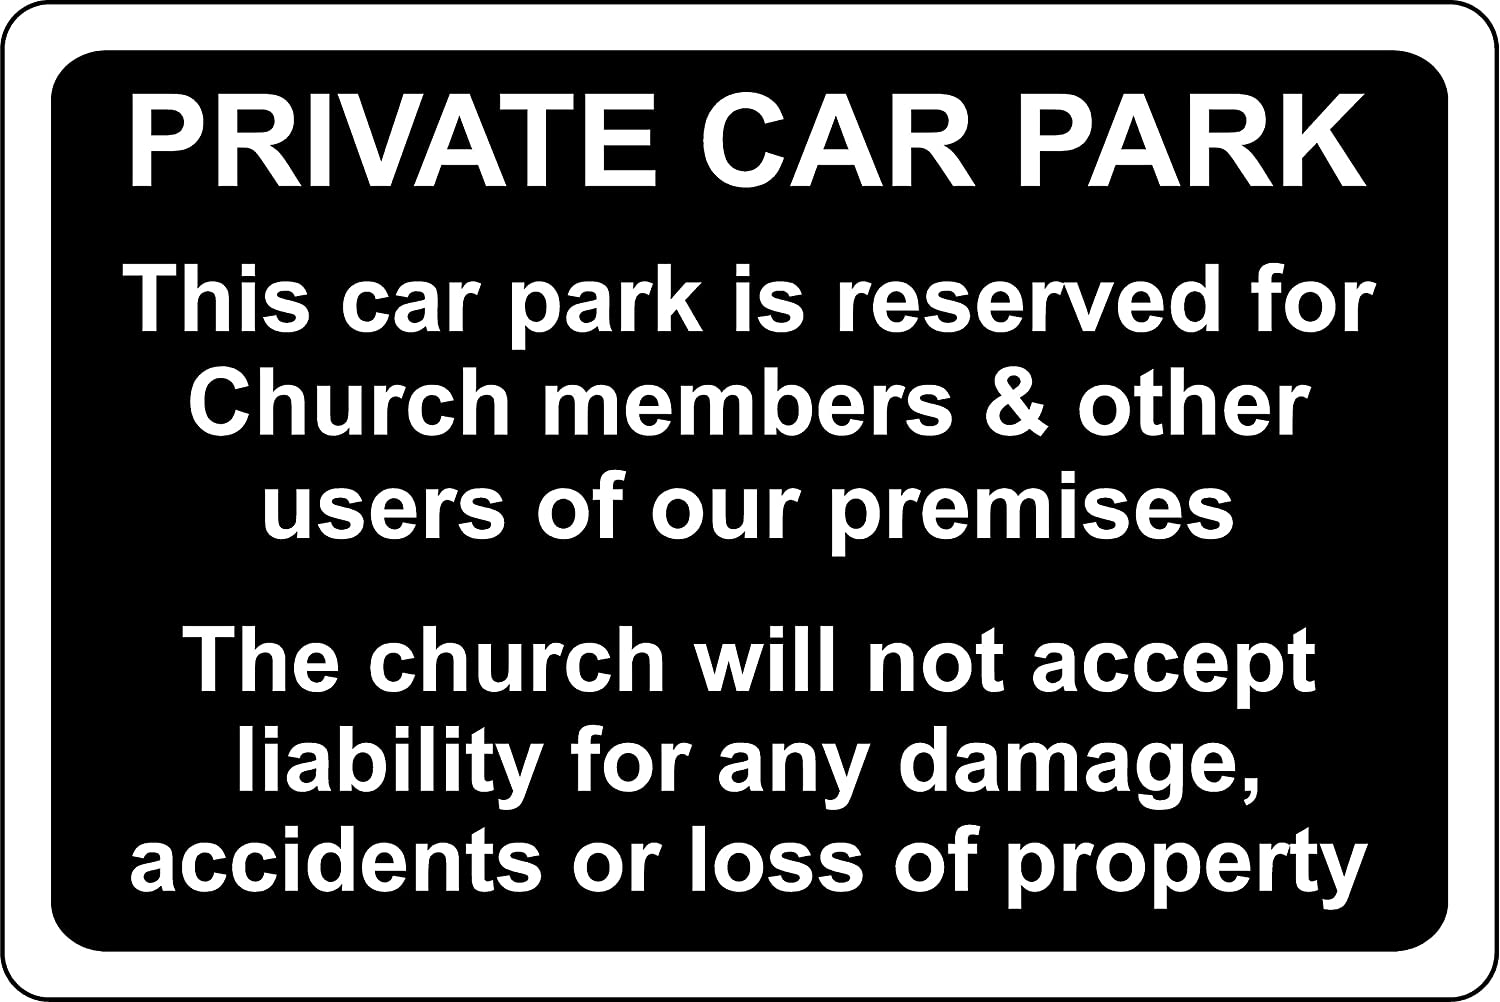 Private car park for church members disclaimer safety sign 3mm Aluminium sign 600mm x 400mm